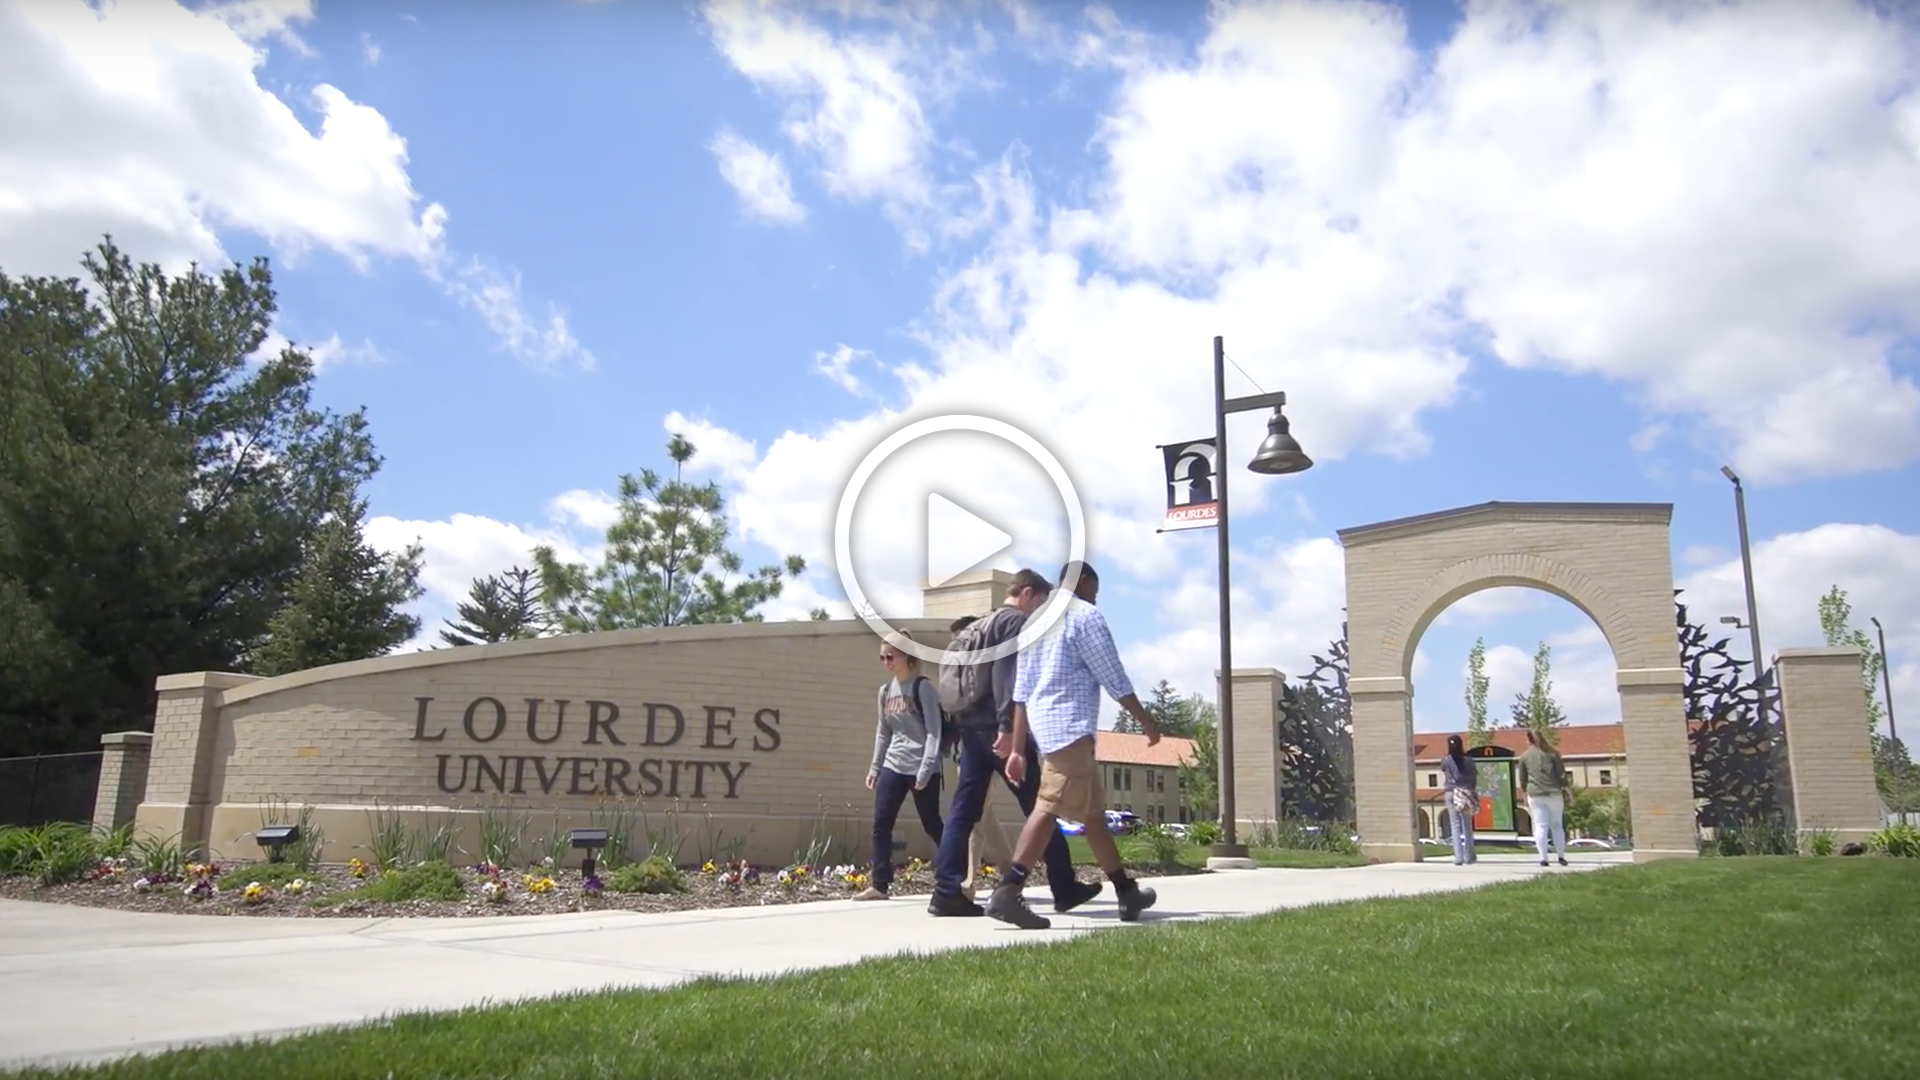 Lourdes University - Education and Human Services